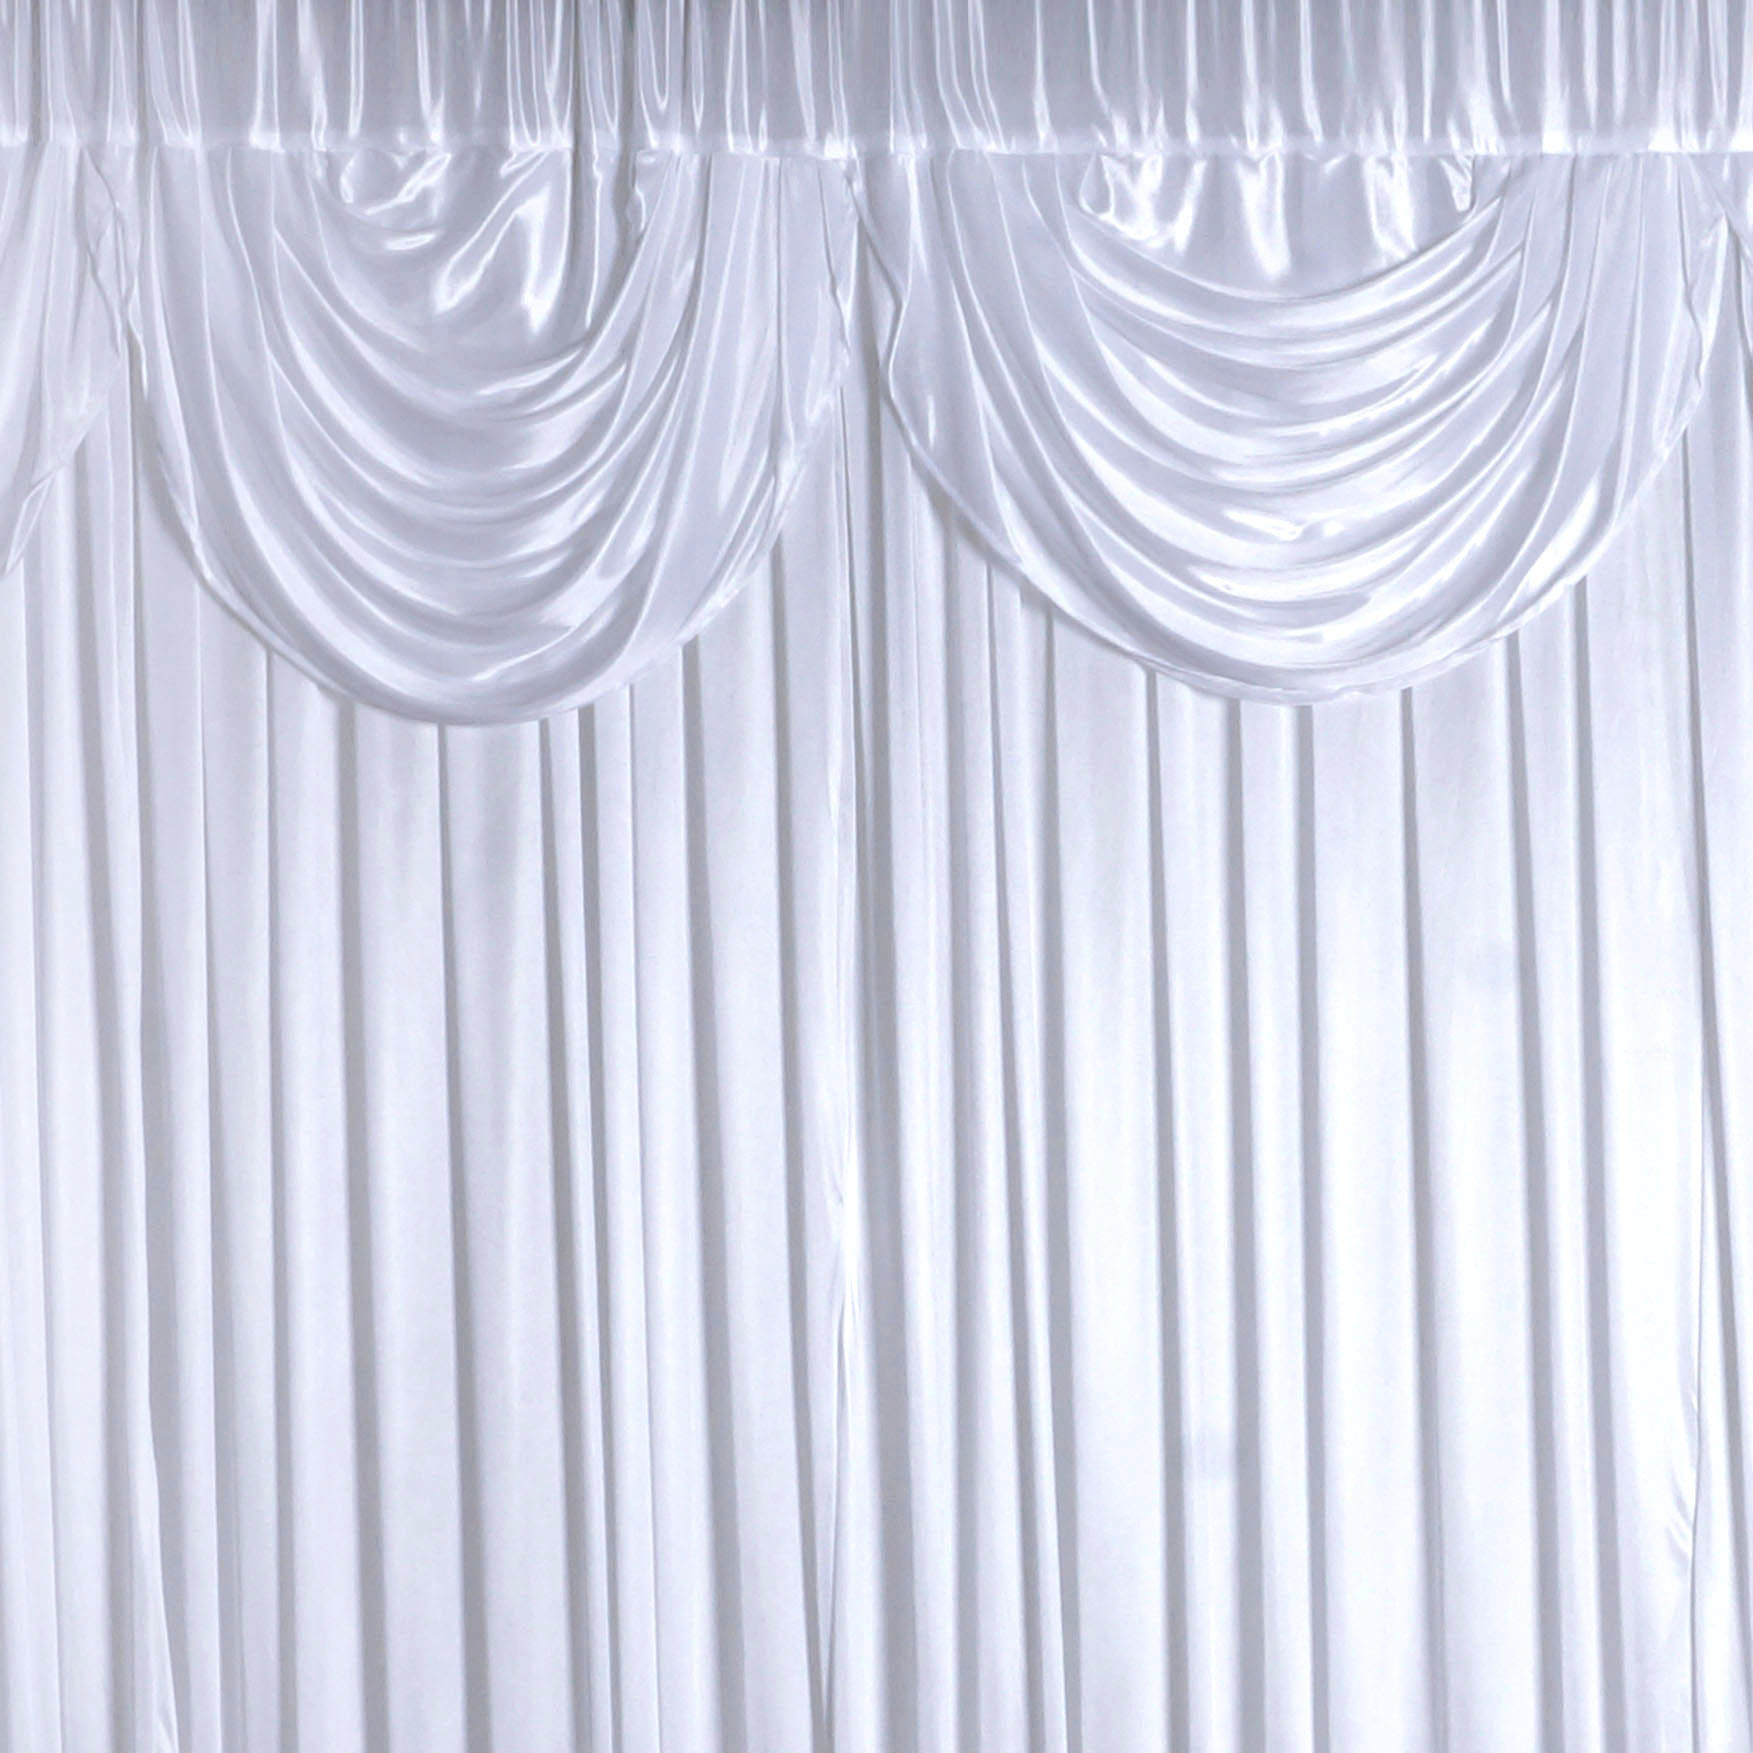 Balsacircle White 20 Feet X 10 Decorative D Backdrop Curtain Wedding Party Photobooth Ceremony Event Photo Decorations